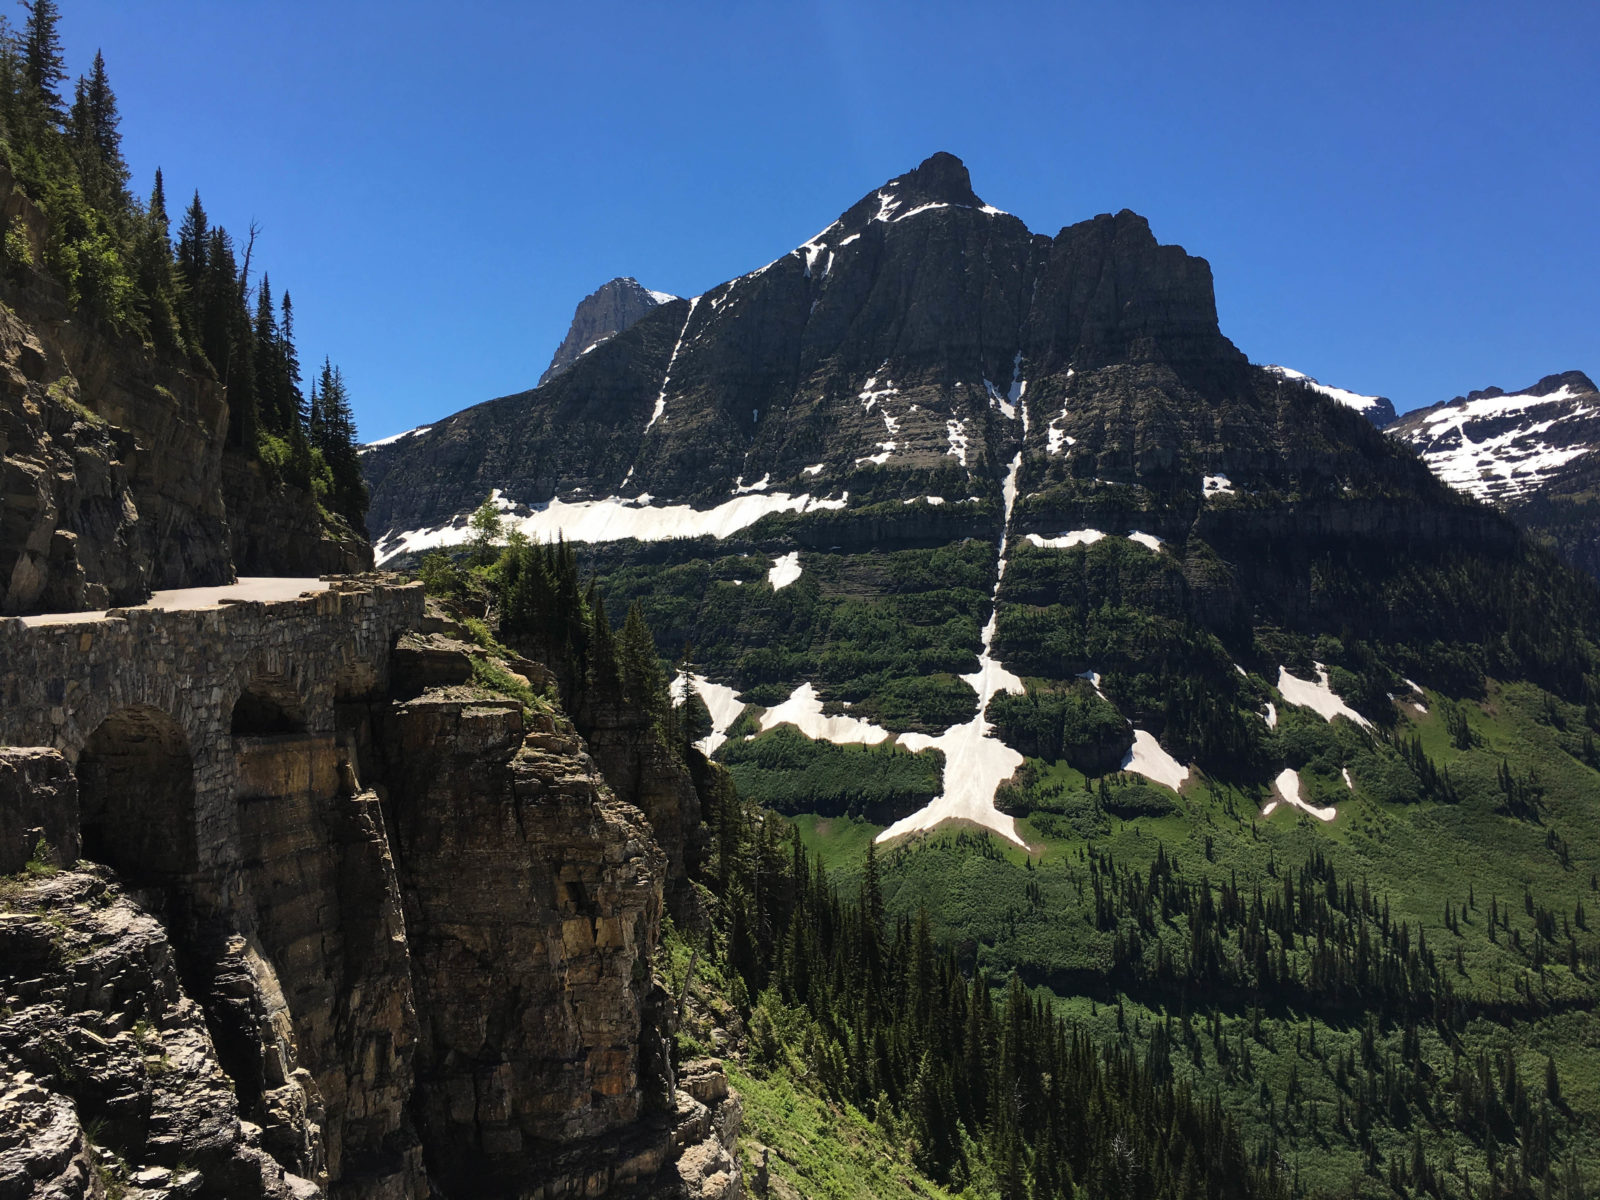 Triple arches on Going to the Sun Road